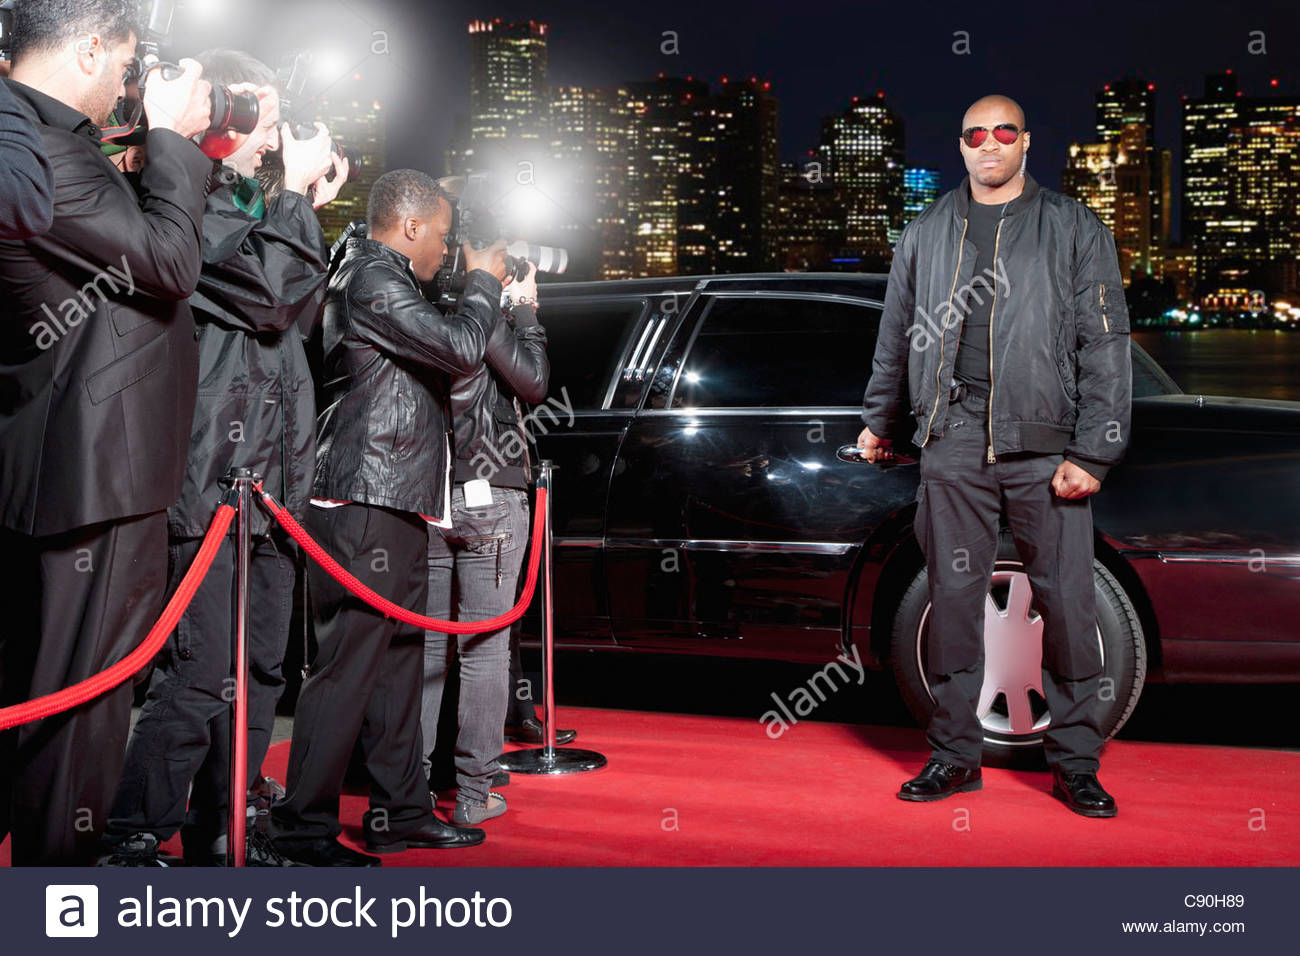 Security Roter Teppich Bodyguard Security Stock Photos And Bodyguard Security Stock